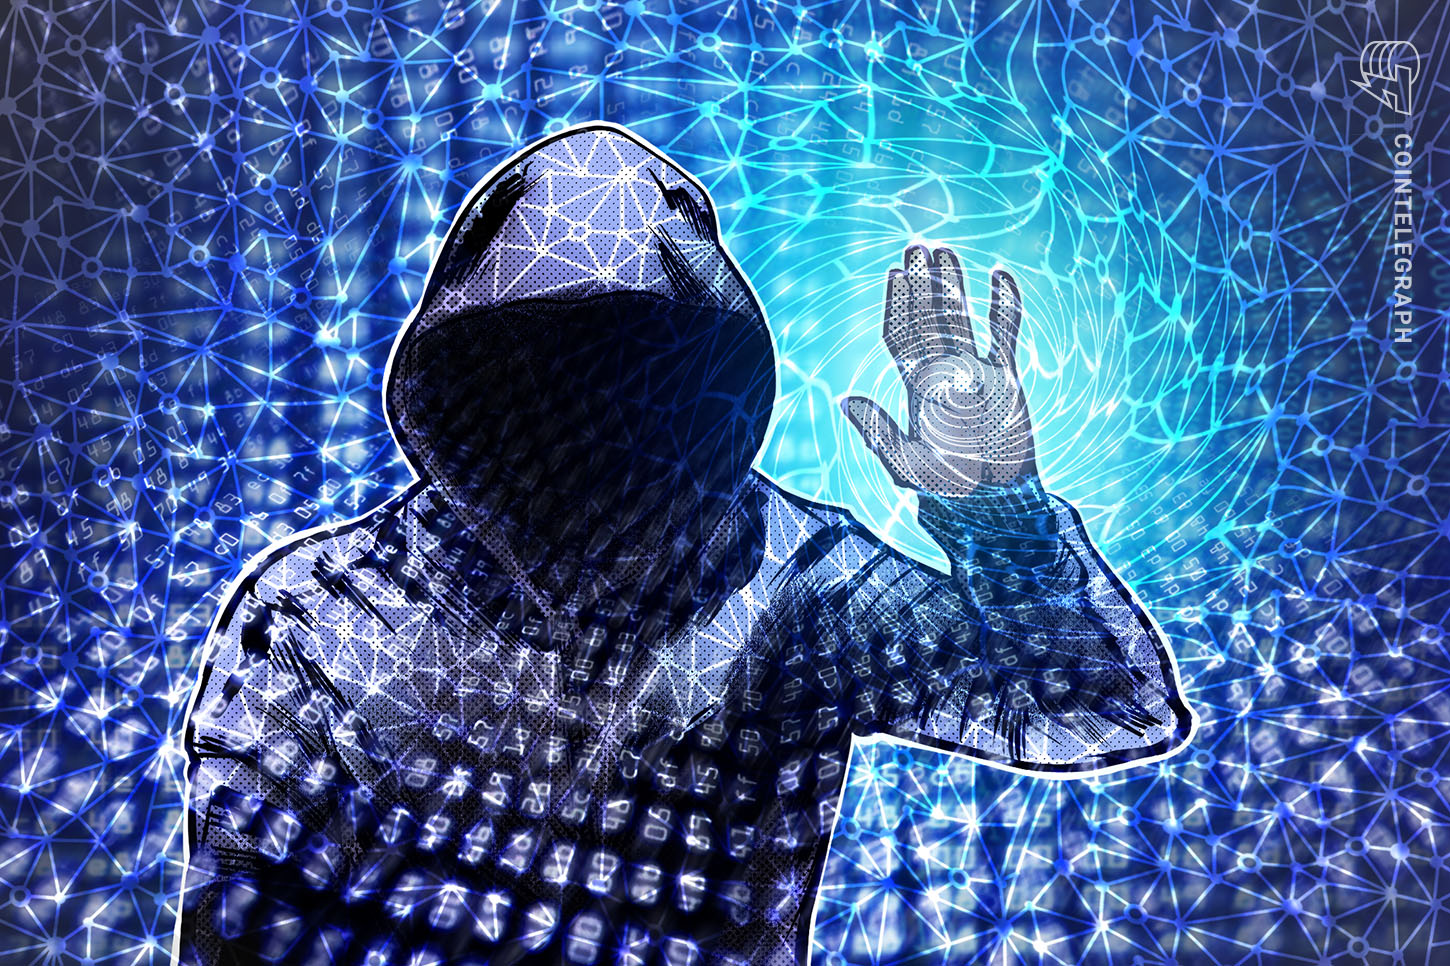 Poly Network hacker returns less than 1% of the $600M theft